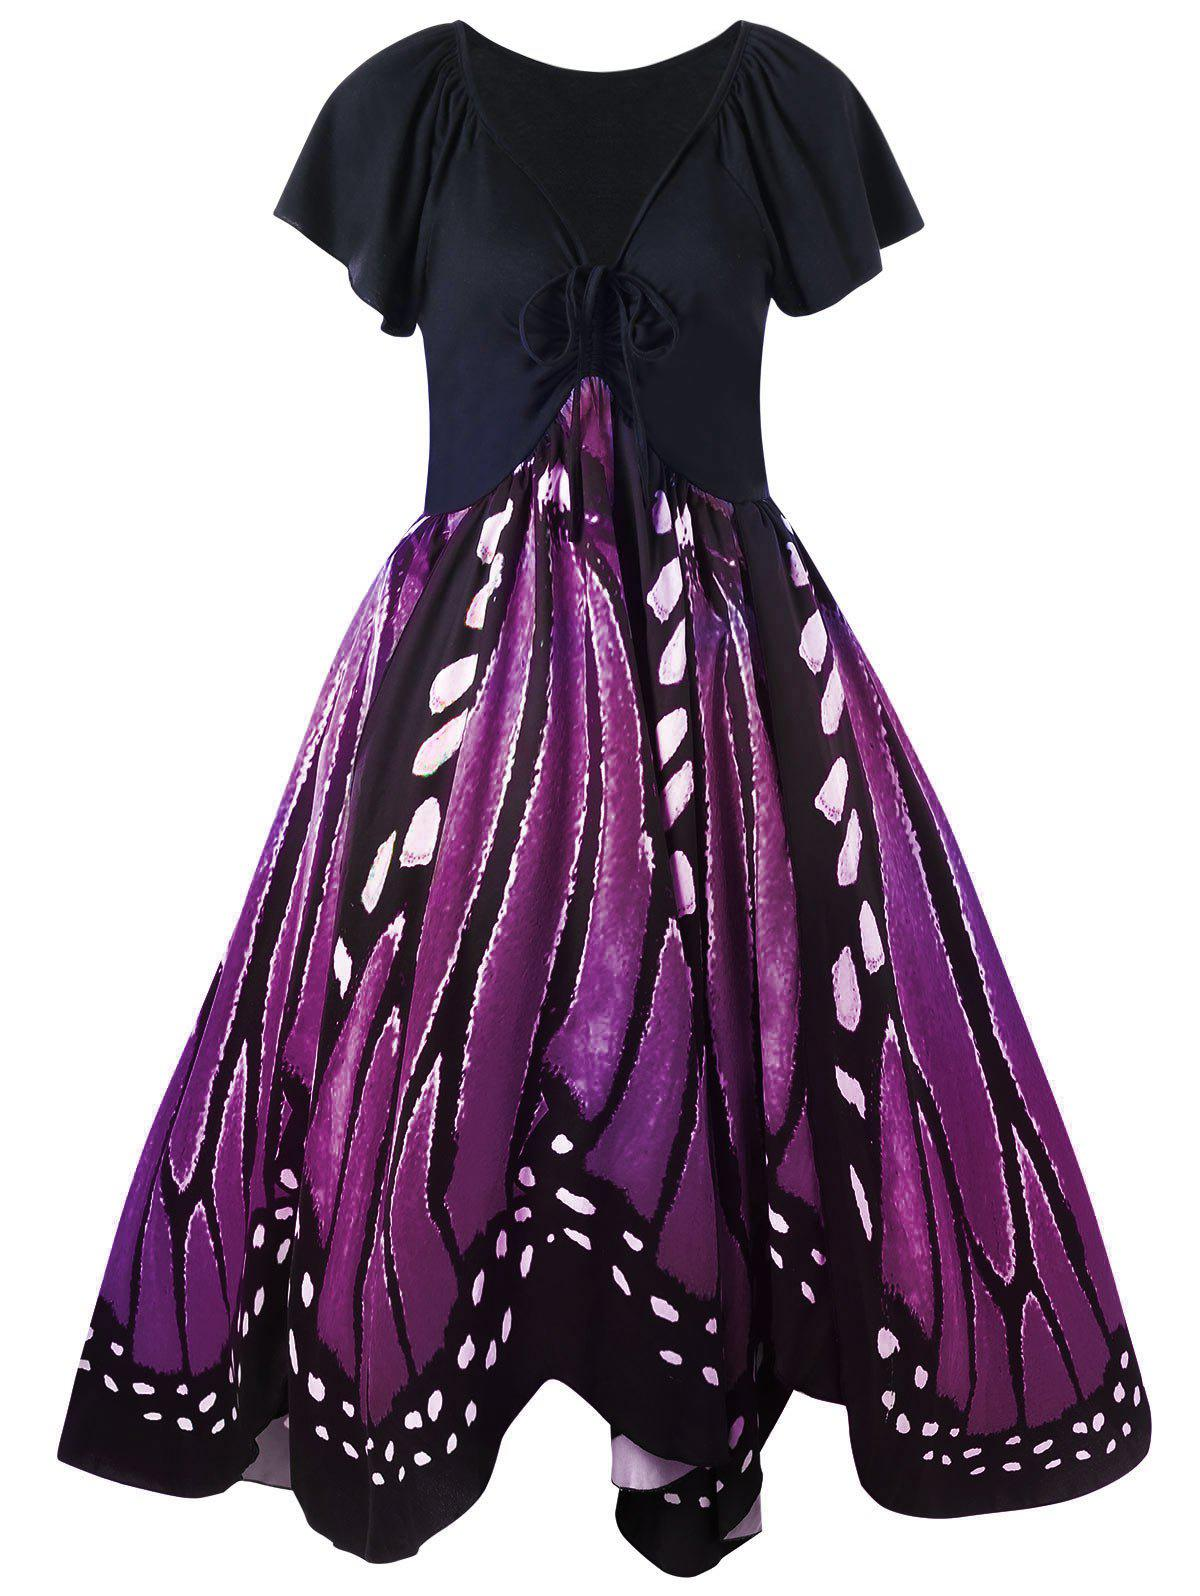 Plus Size Low Cut Butterfly Print Swing DressWOMEN<br><br>Size: XL; Color: PURPLE; Style: Vintage; Material: Polyester,Spandex; Silhouette: A-Line; Dresses Length: Knee-Length; Neckline: Plunging Neck; Sleeve Length: Short Sleeves; Pattern Type: Butterfly; With Belt: No; Season: Fall,Spring; Weight: 0.3700kg; Package Contents: 1 x Dress;